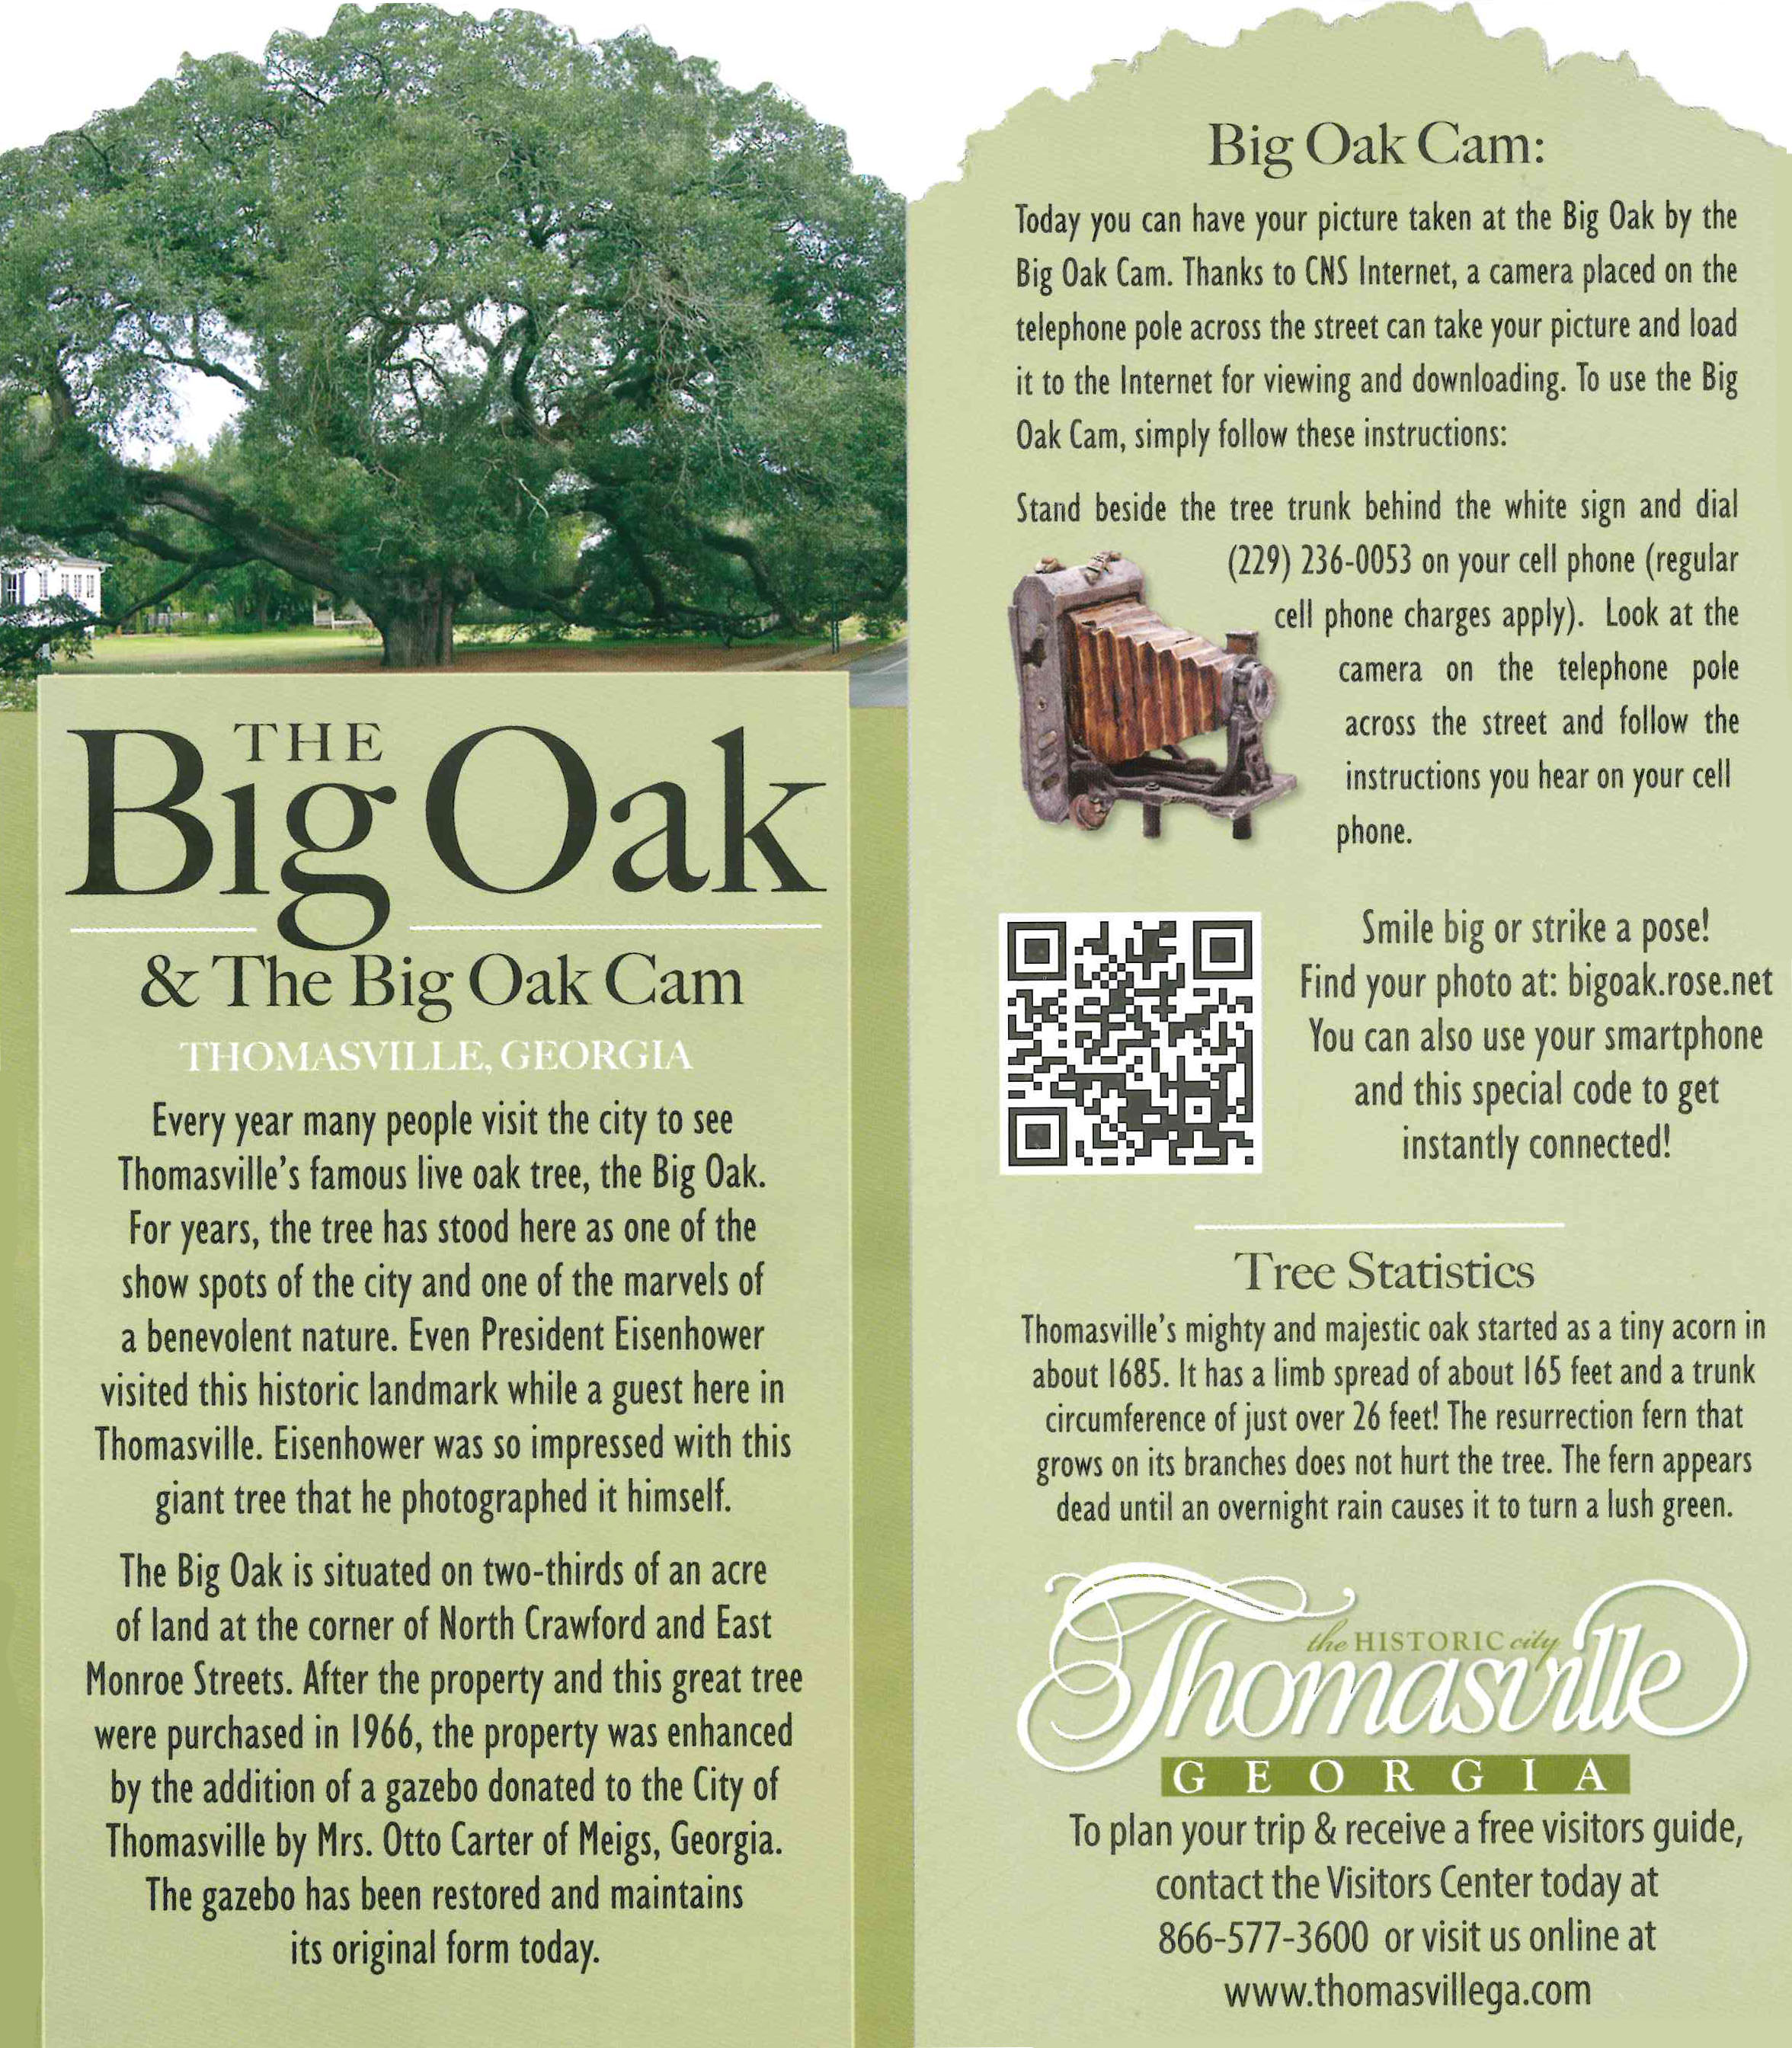 The Big Oak and Big Oak Cam | Official Georgia Tourism & Travel